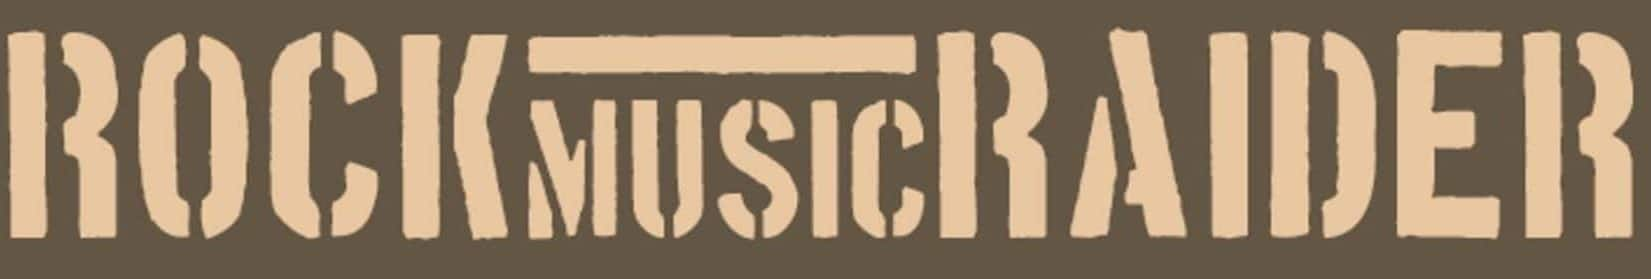 Welcome to RockmusicRaider - Header Image - Reviews - News - Interviews